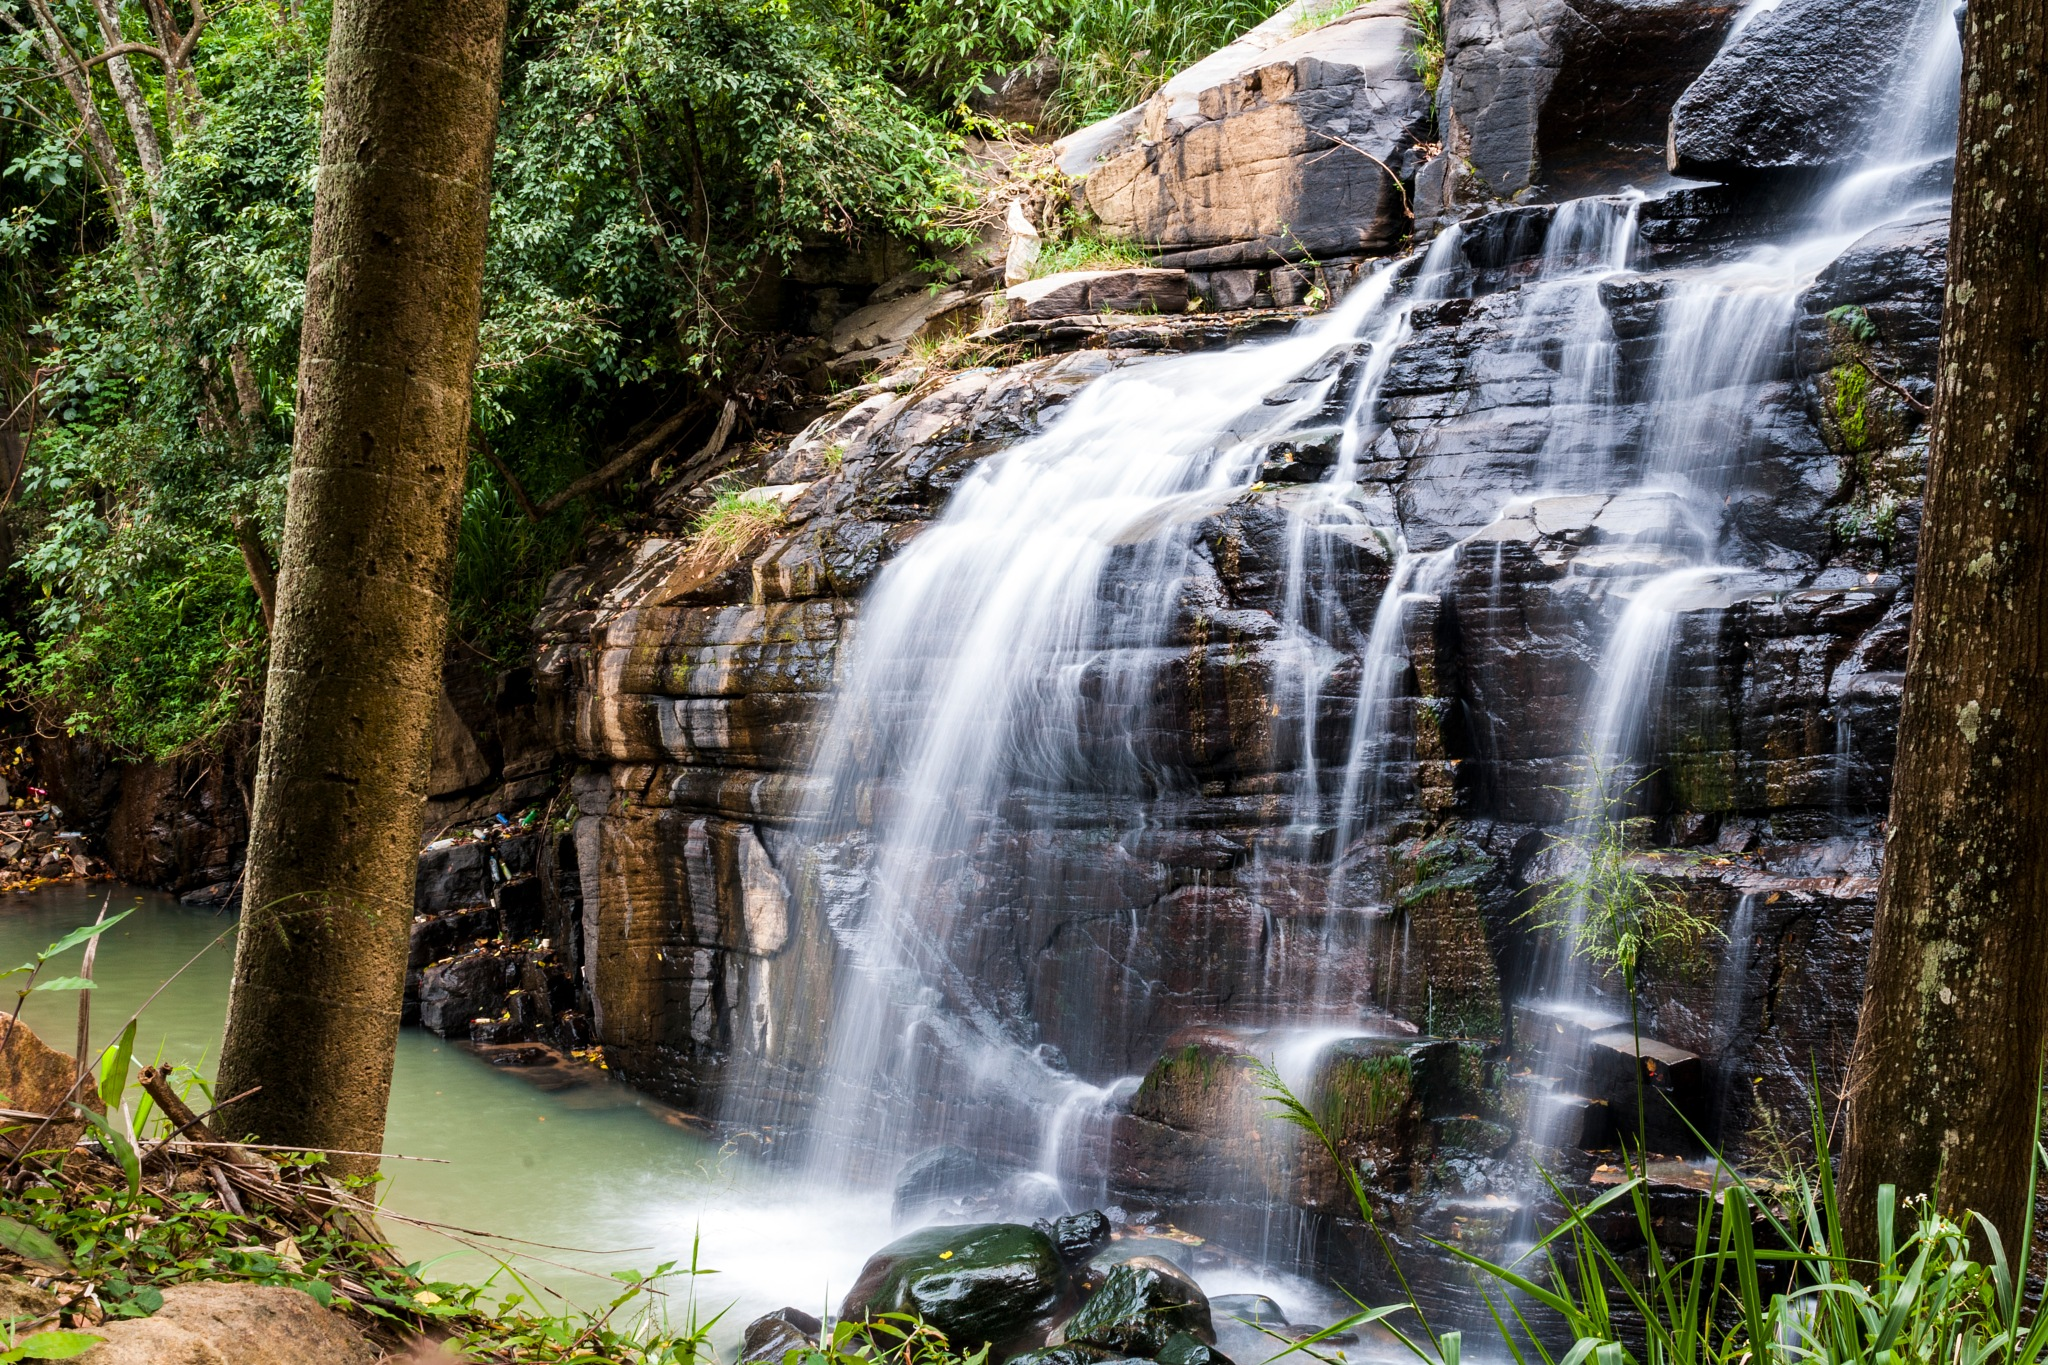 WaterFall in a Jungle by Jeremy Cirot